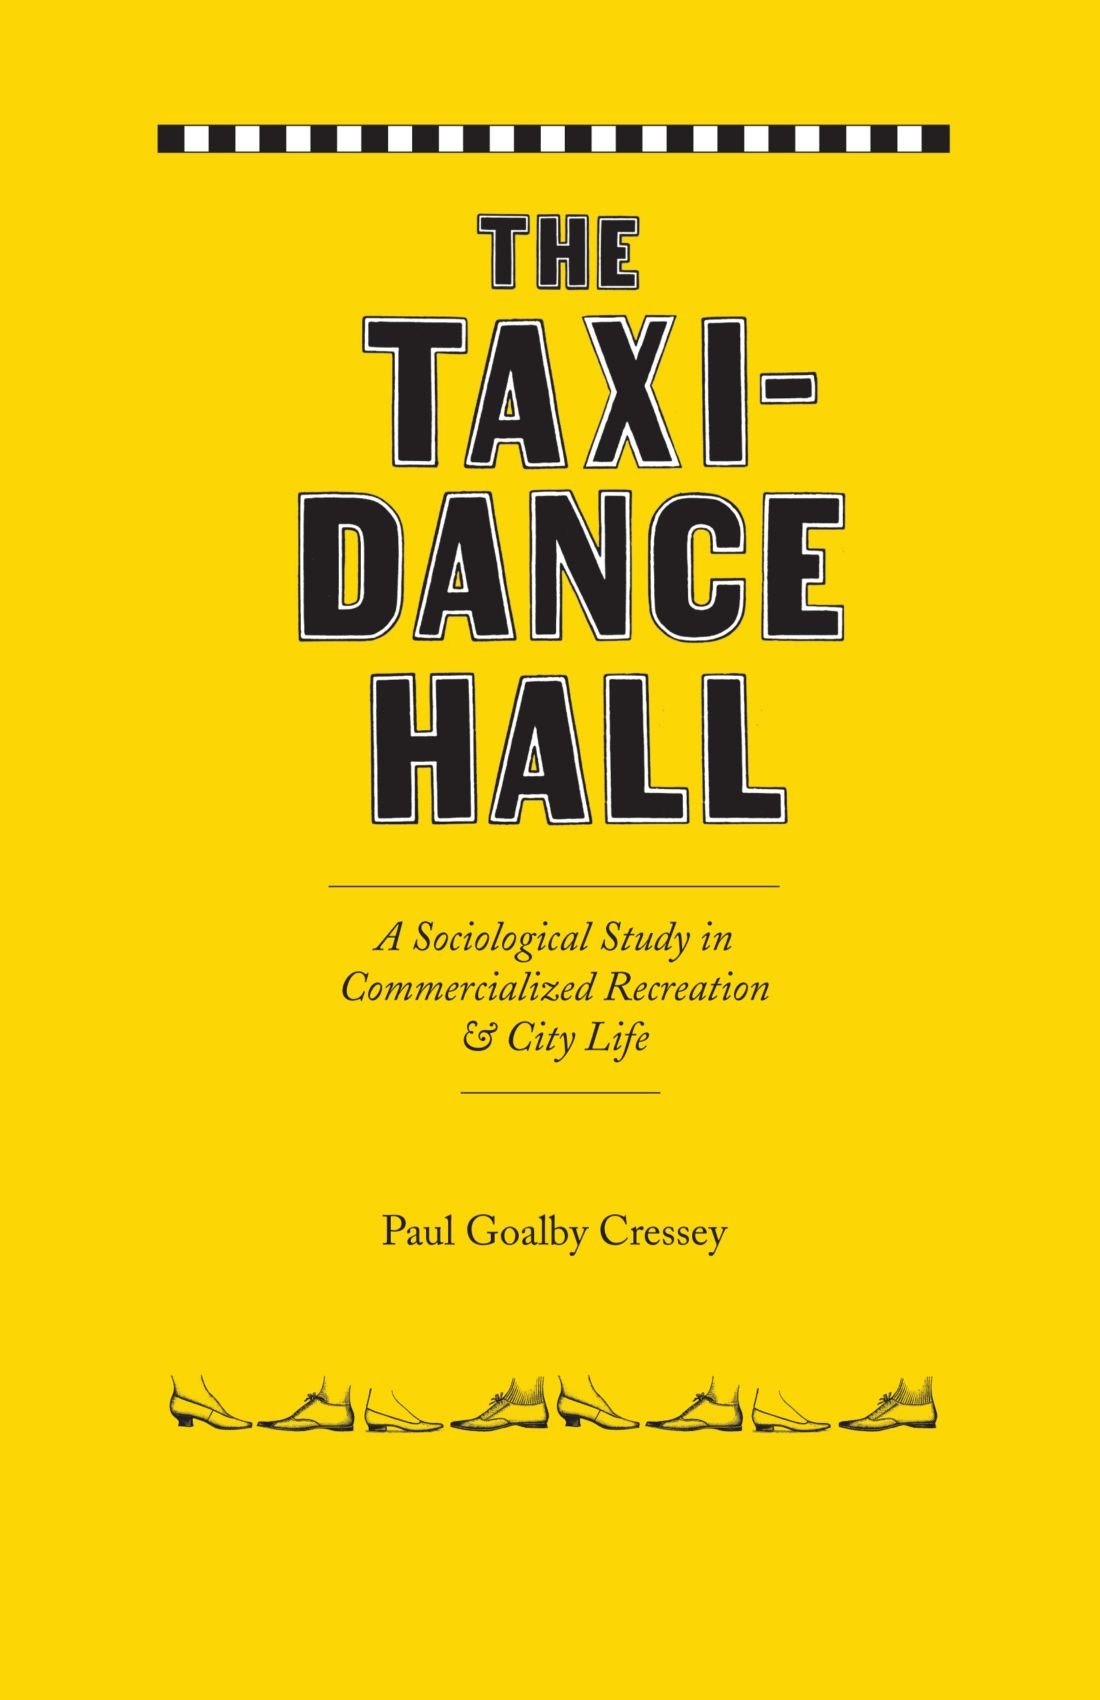 bf386456100 The Taxi-Dance Hall: A Sociological Study in Commercialized Recreation and  City Life (University of Chicago Sociological Series) Paperback – 1 Jul 2008